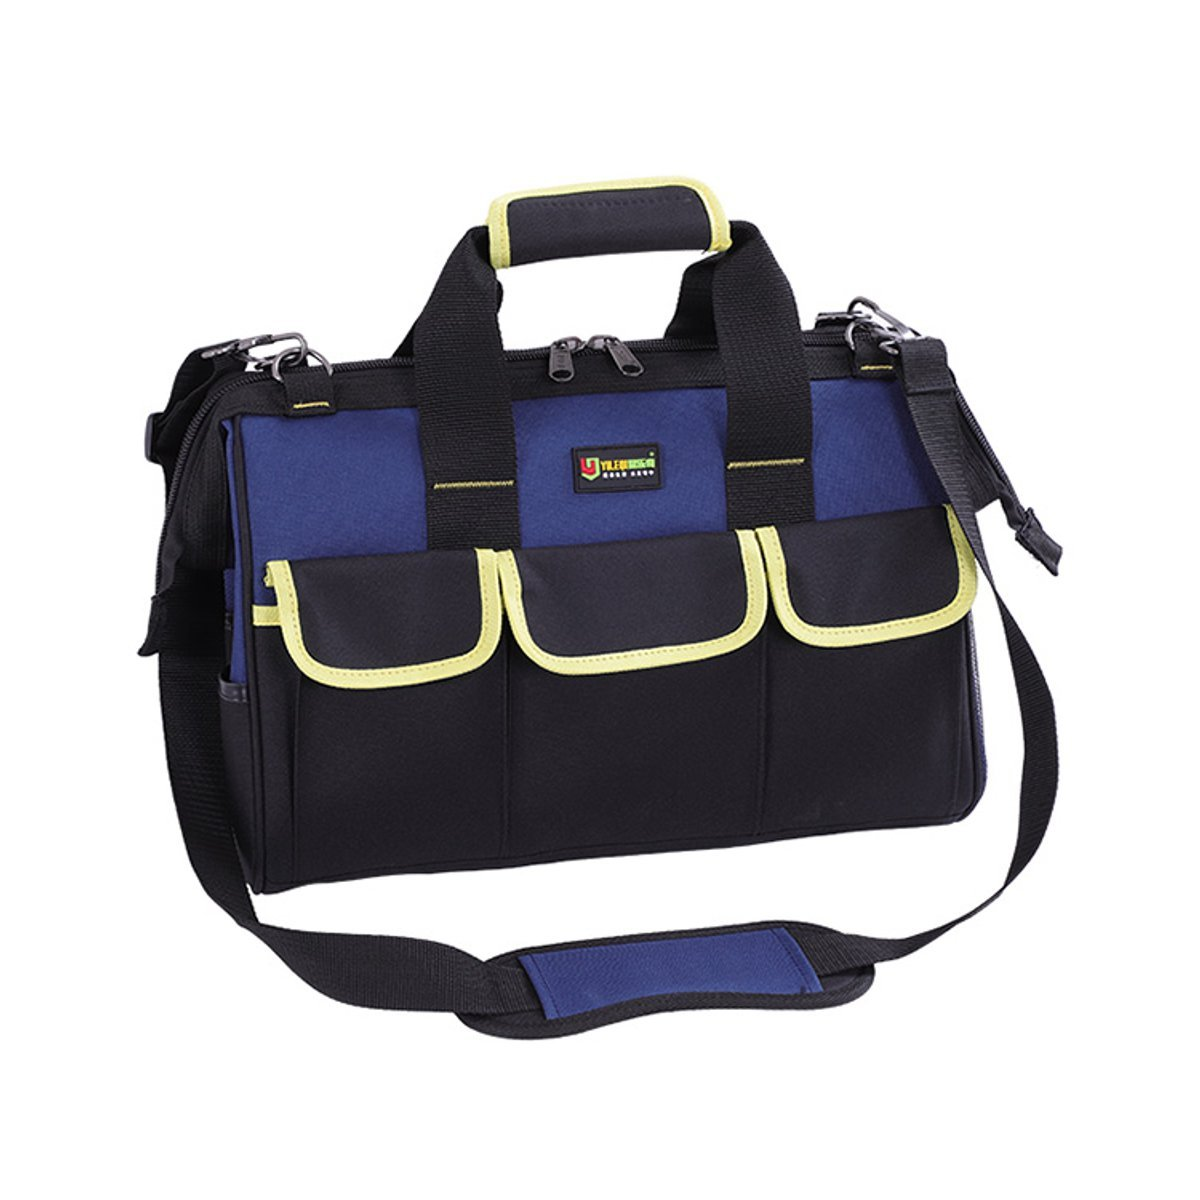 Tool Organizers 14inch 16inch Tool Bag Heavy Duty Oxford Pouch Case Holder Waterproof Pocket - (Inch: 16 Inch)